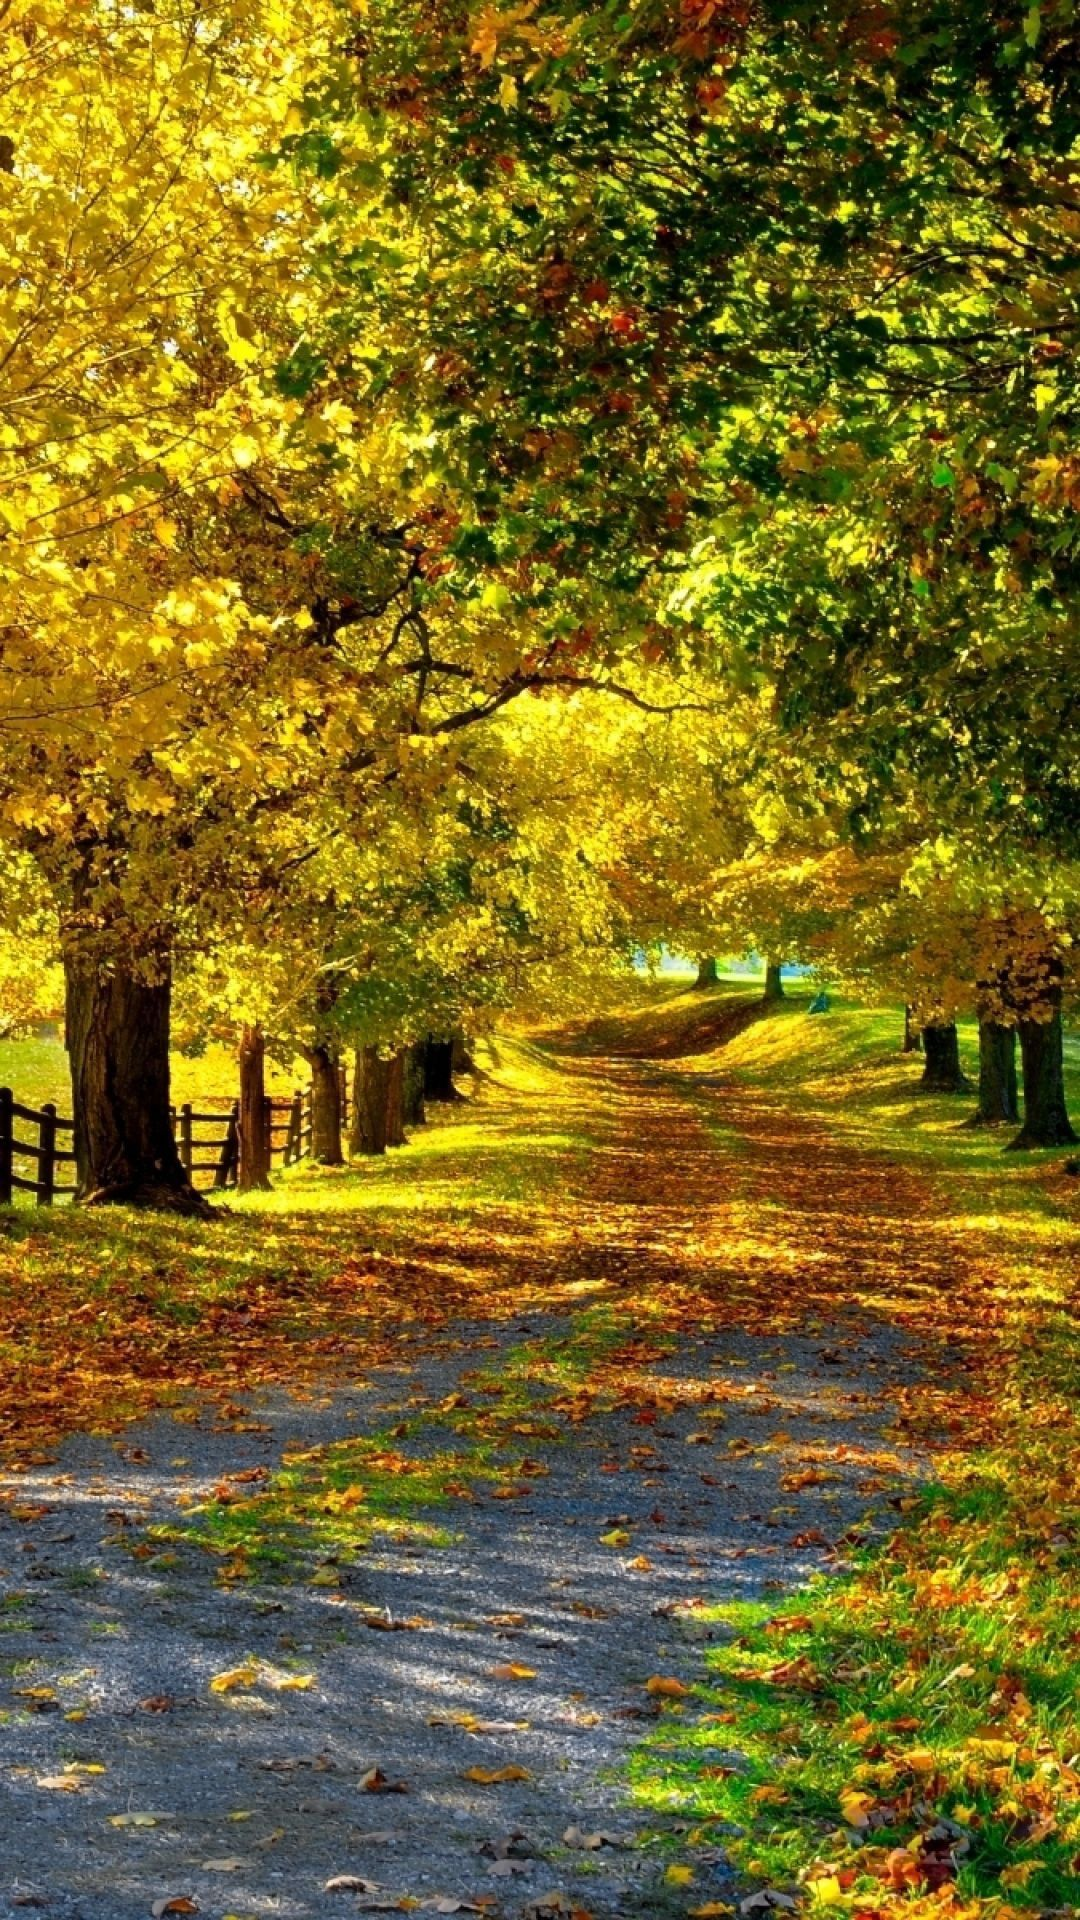 Fall Is One Of My Favorite Times Of The Year Autumn Scenery Scenery Beautiful Landscapes